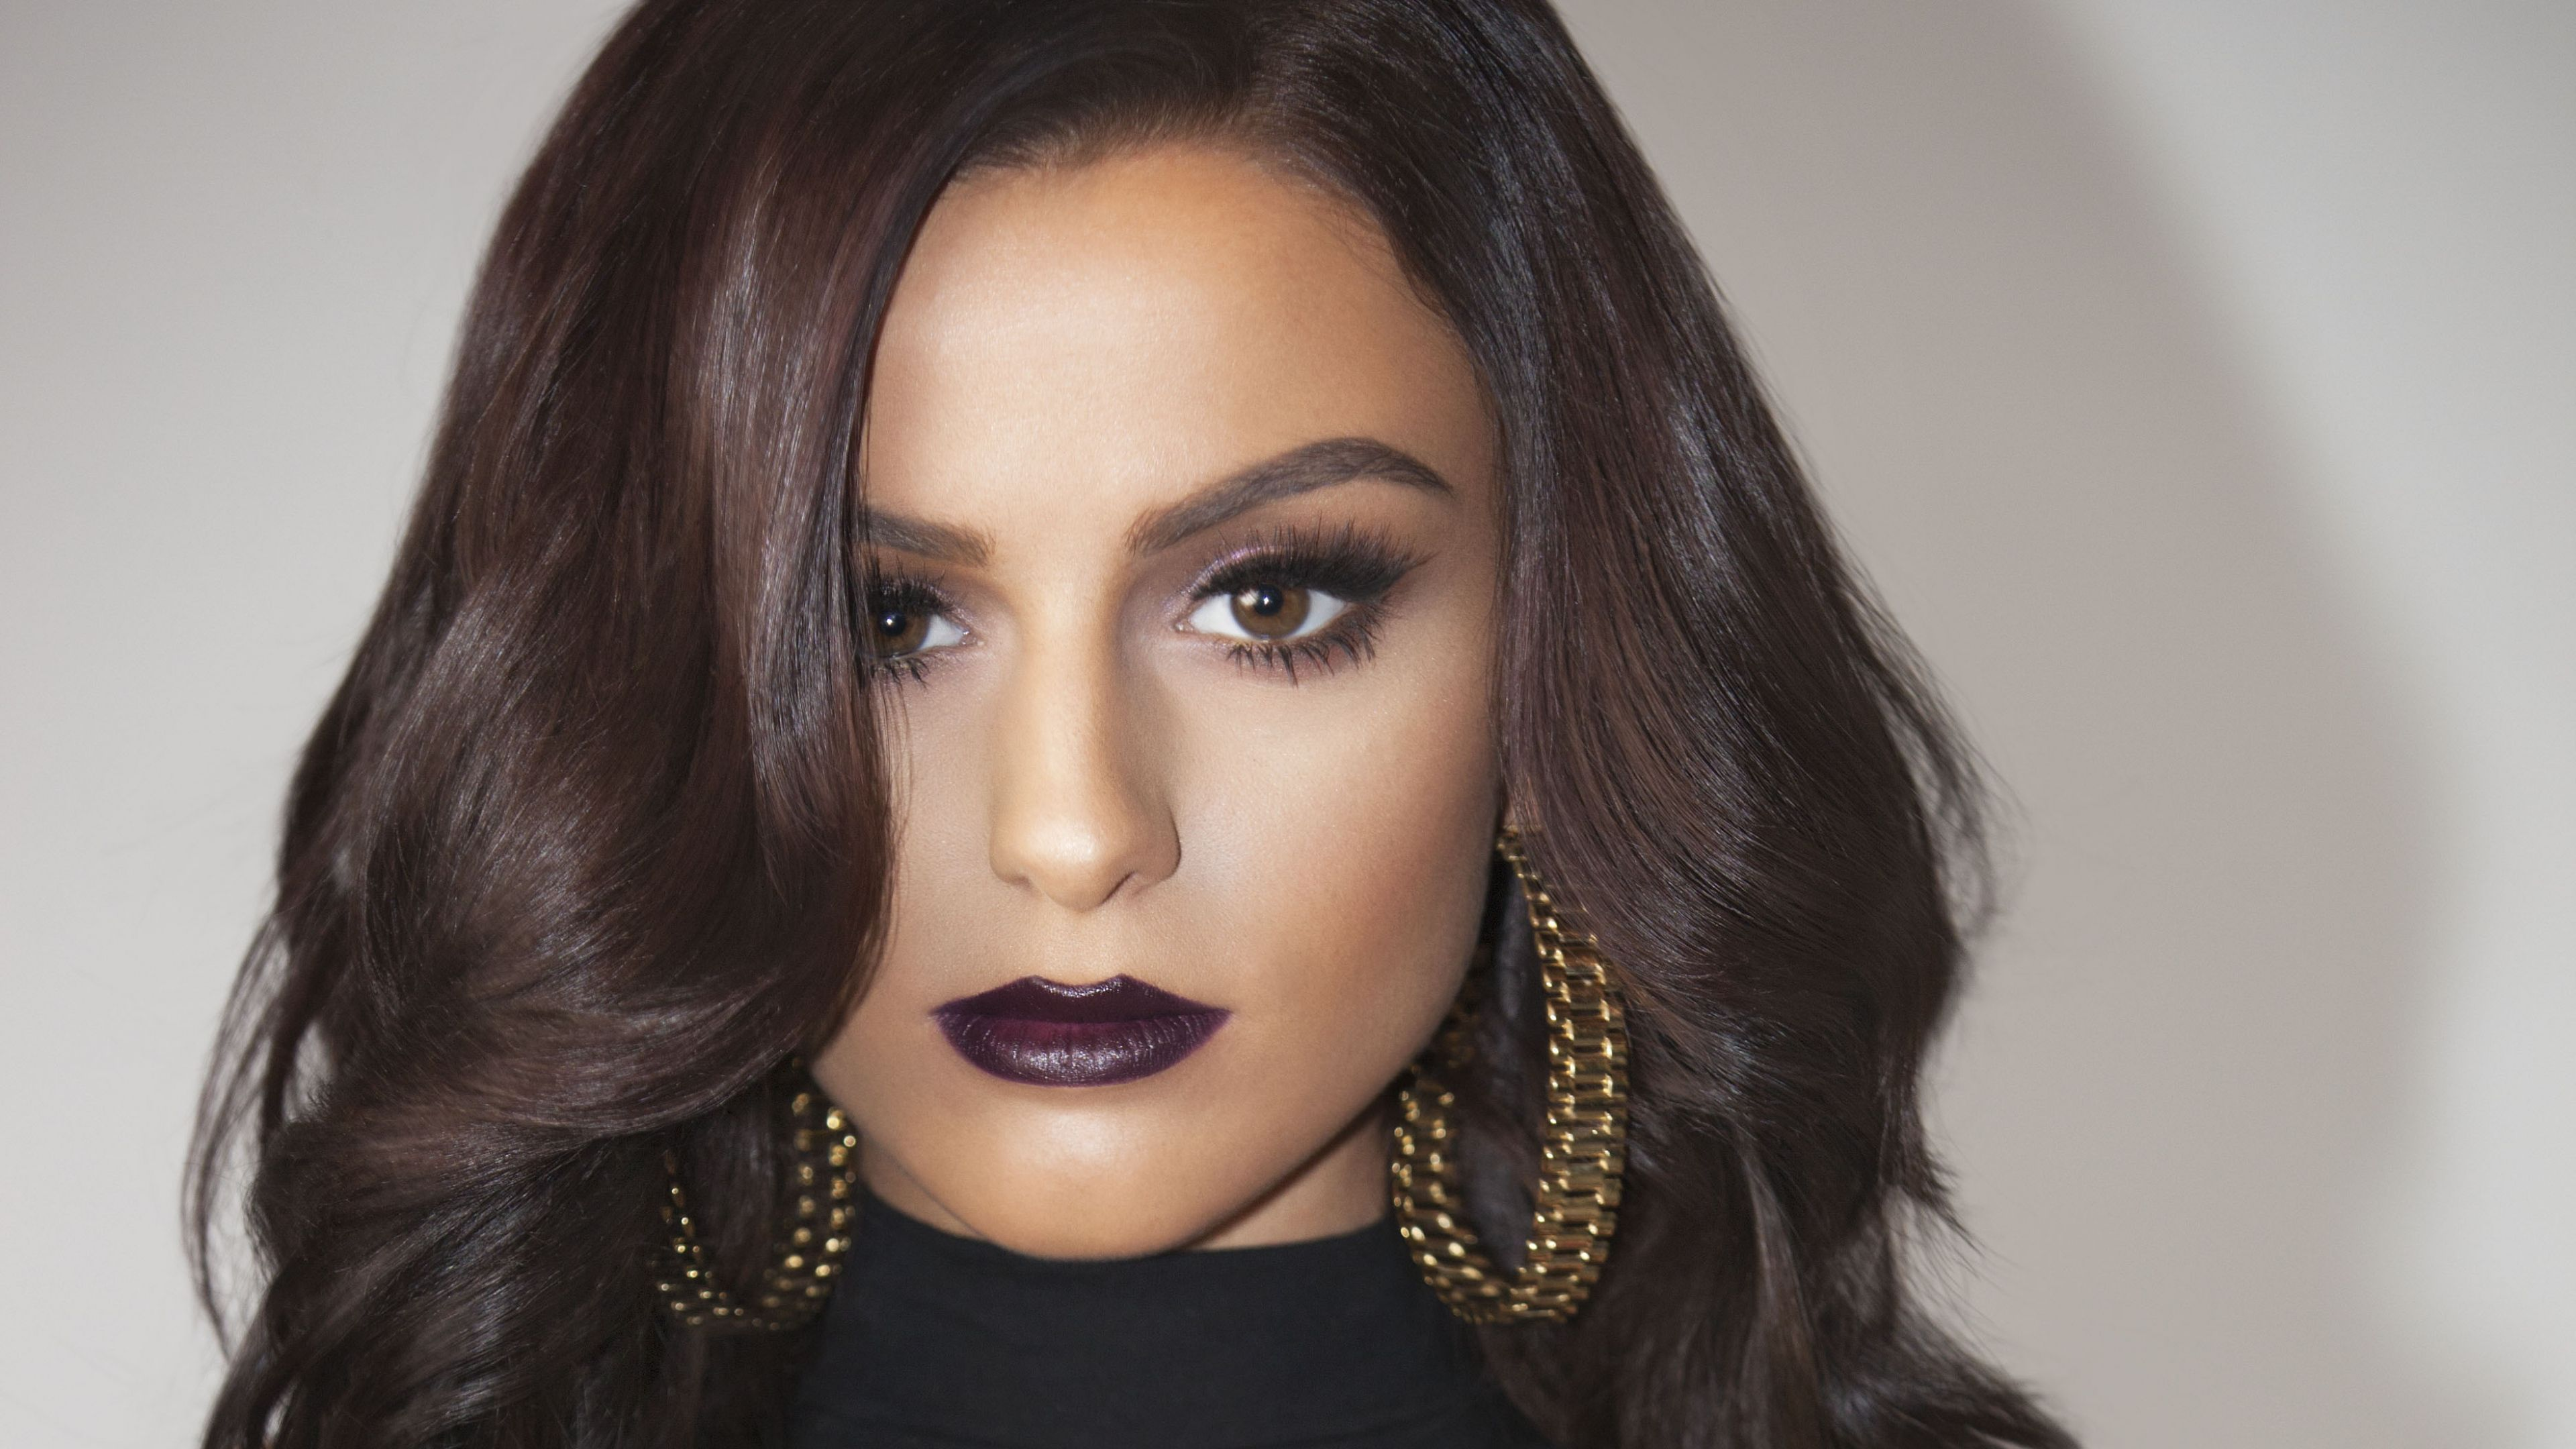 Fall Out Boy Wallpapers 2015 Cher Lloyd Wallpapers Backgrounds